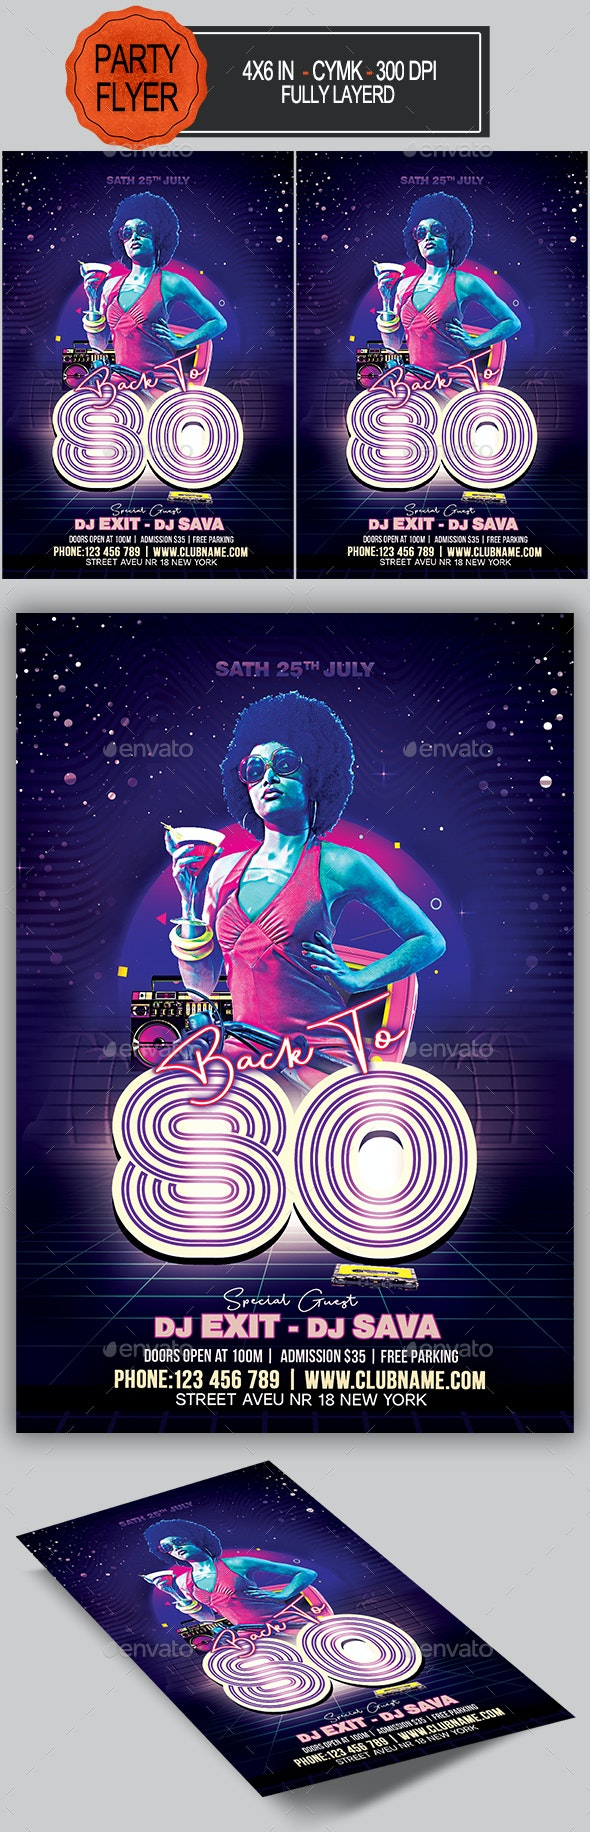 80s Party Flyer - Clubs & Parties Events